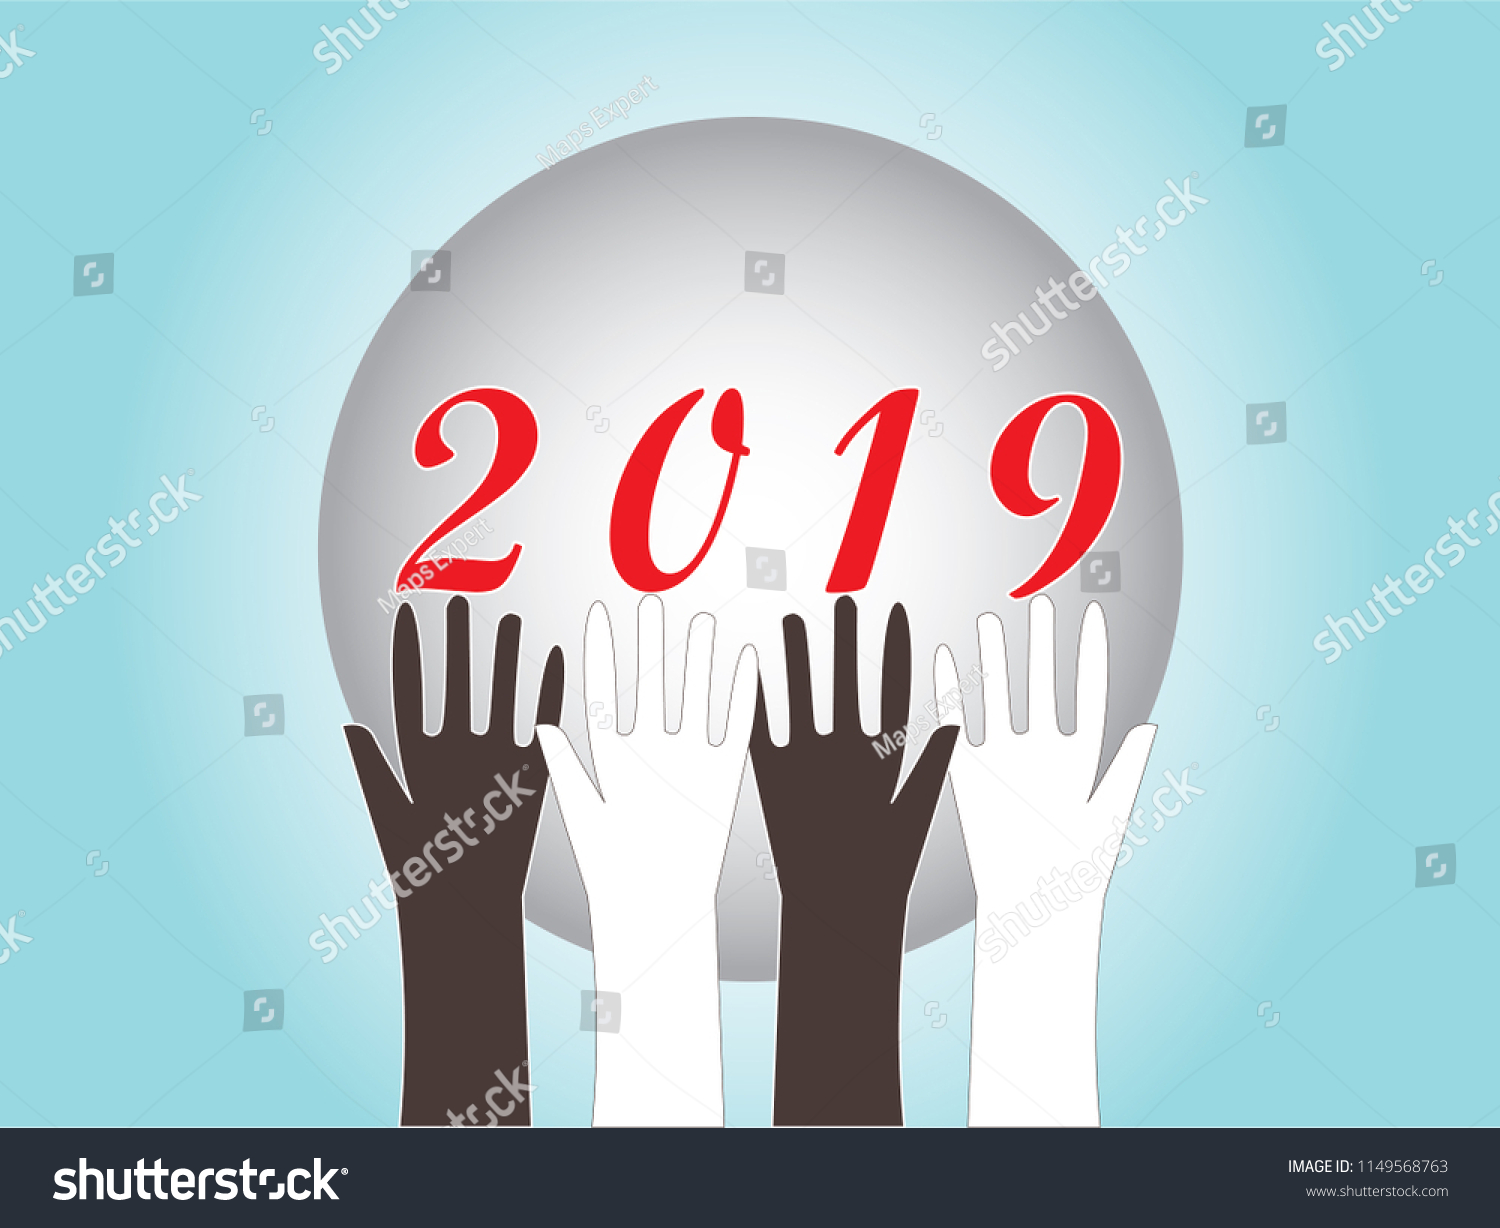 happy new year 2019 wallpaper clip art image abstract vector illustration background with concepts of love